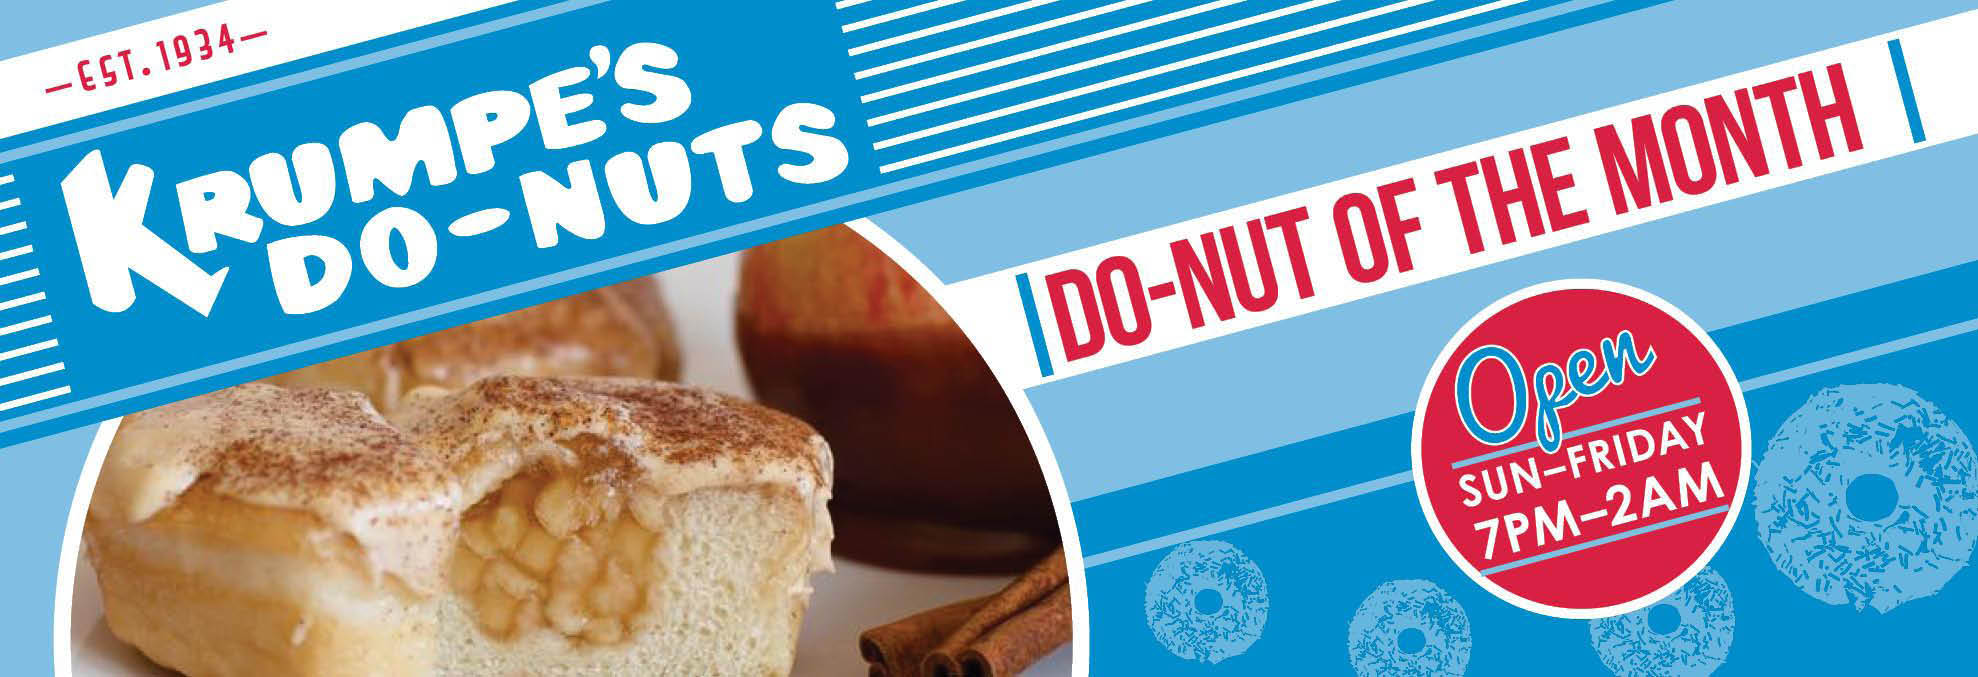 Krumpe's Do-Nuts, Donuts, Dessert, Donut of the month, Chocolate, Glazed